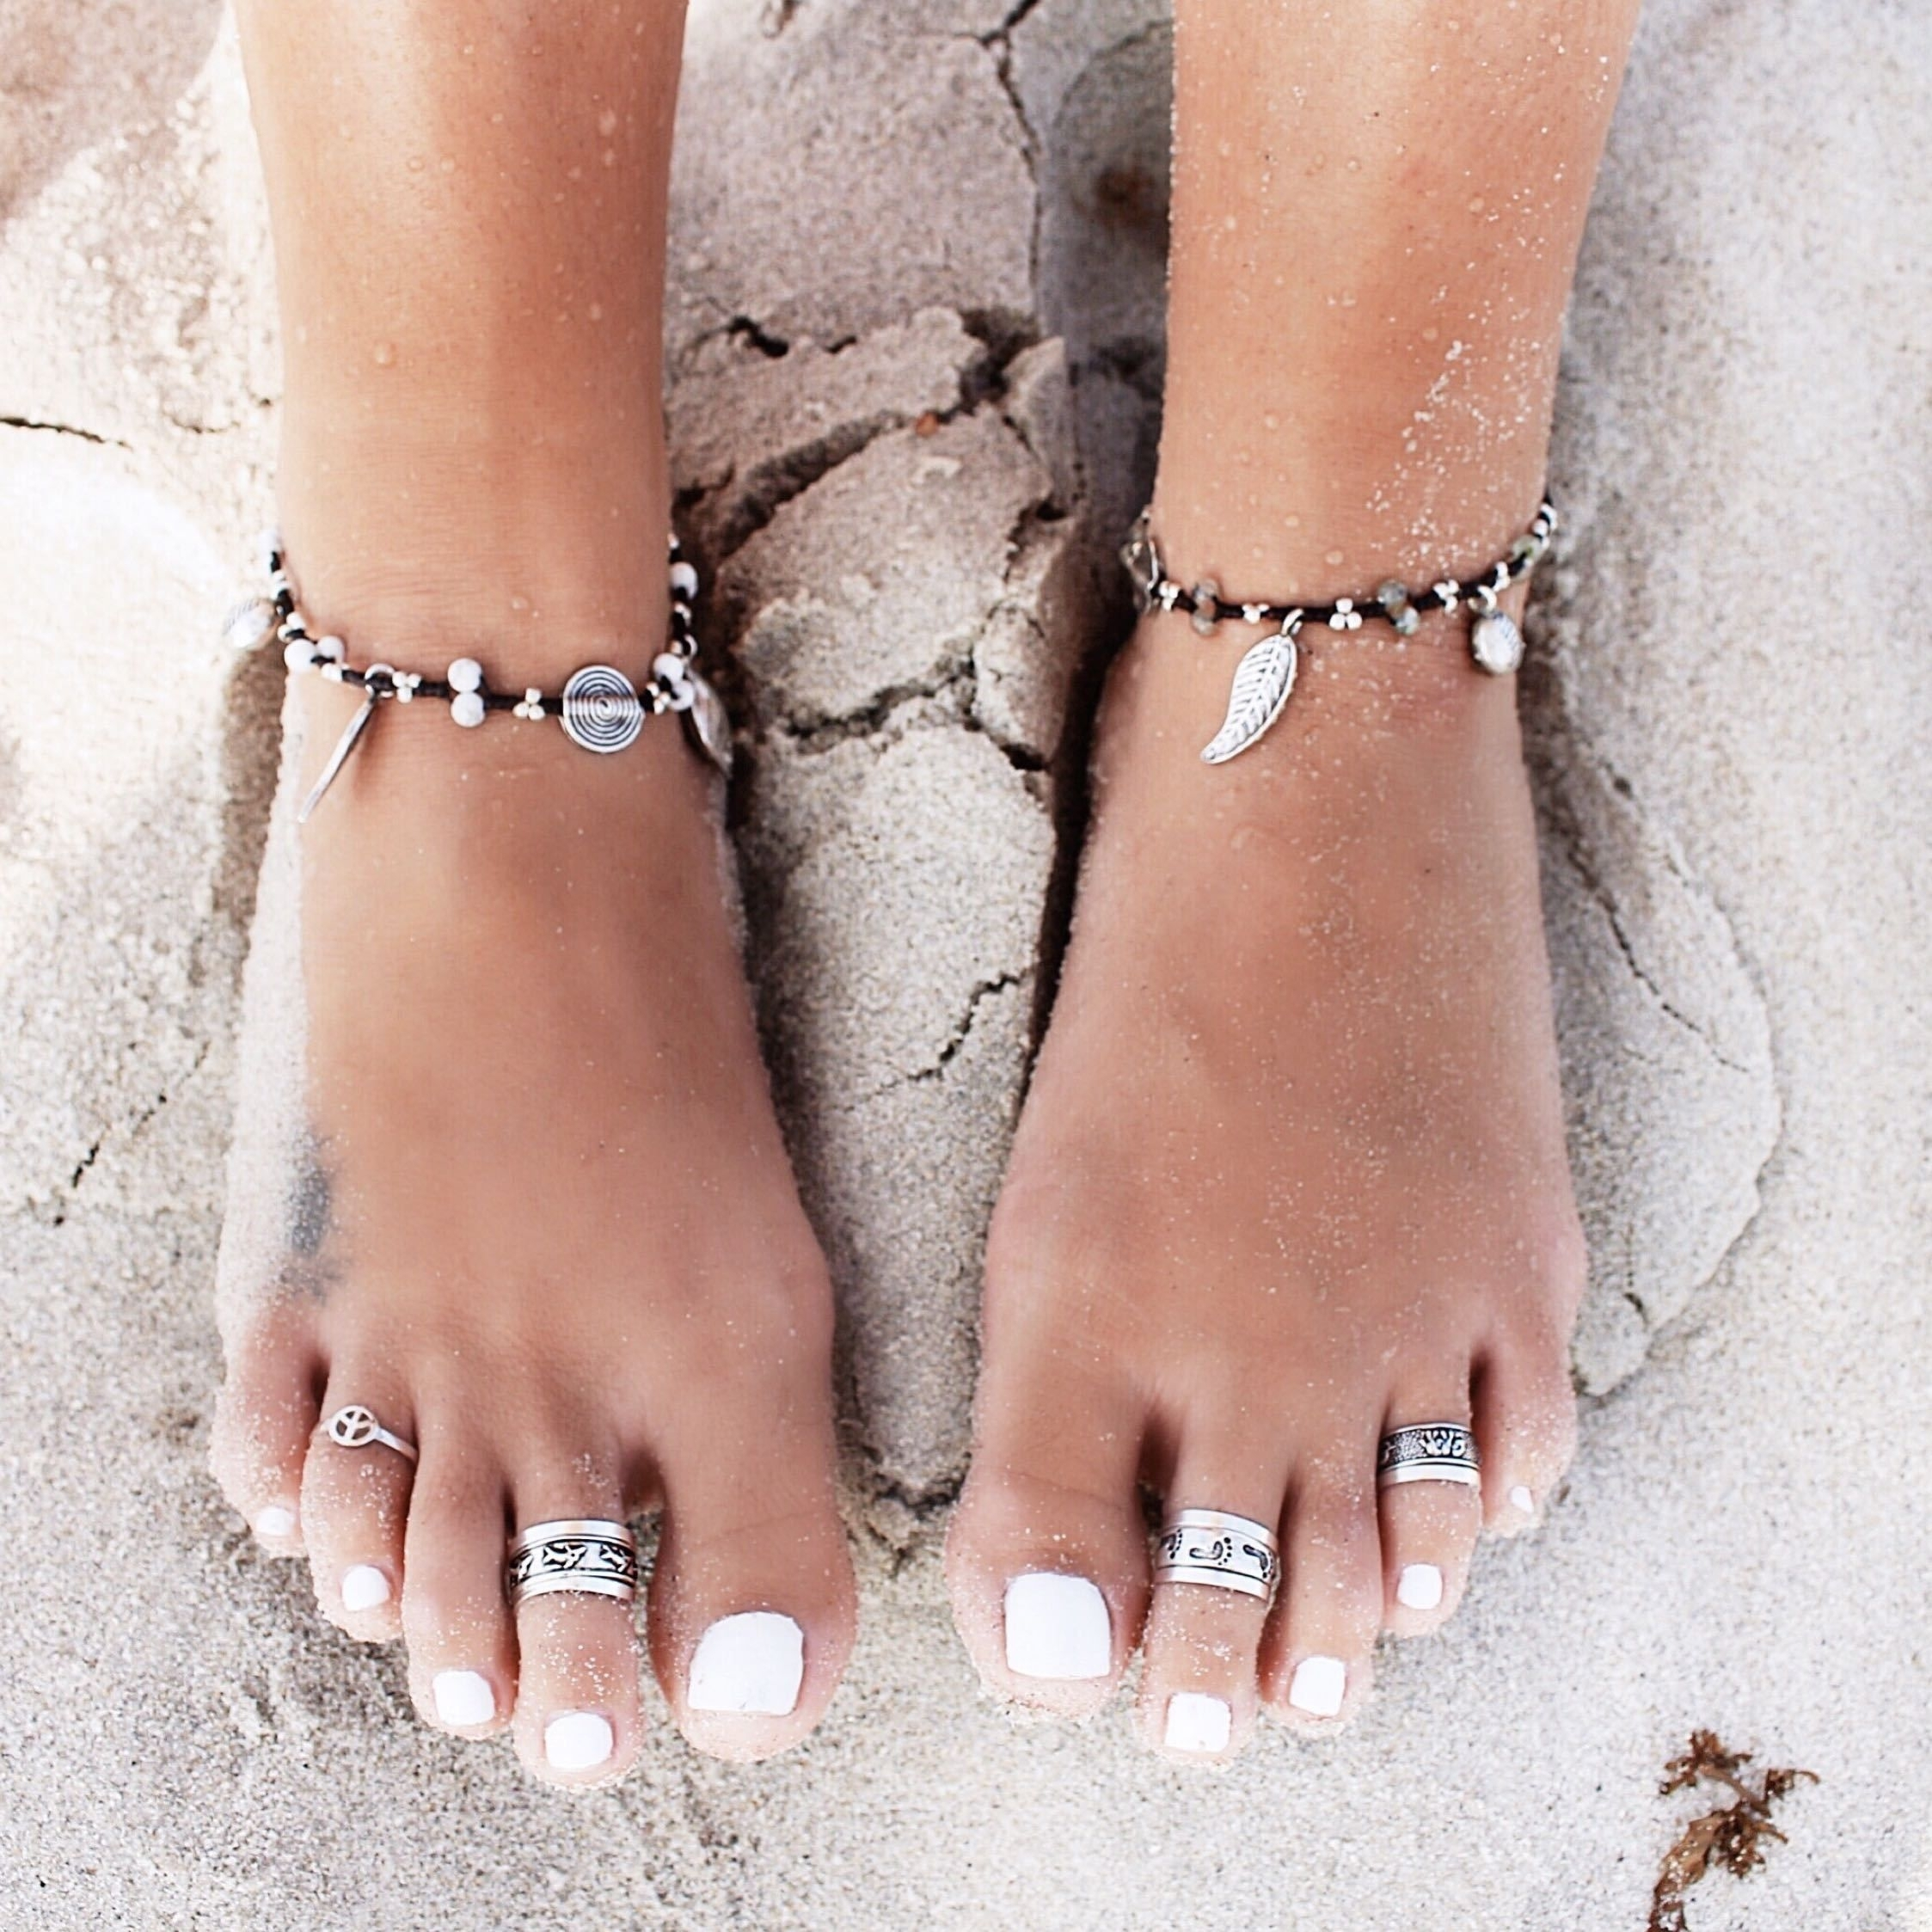 ≫∙∙boho, Feathers + Gypsy Spirit∙∙≪ | Nails | Pinterest With Most Current White Gold Toe Rings (View 14 of 15)